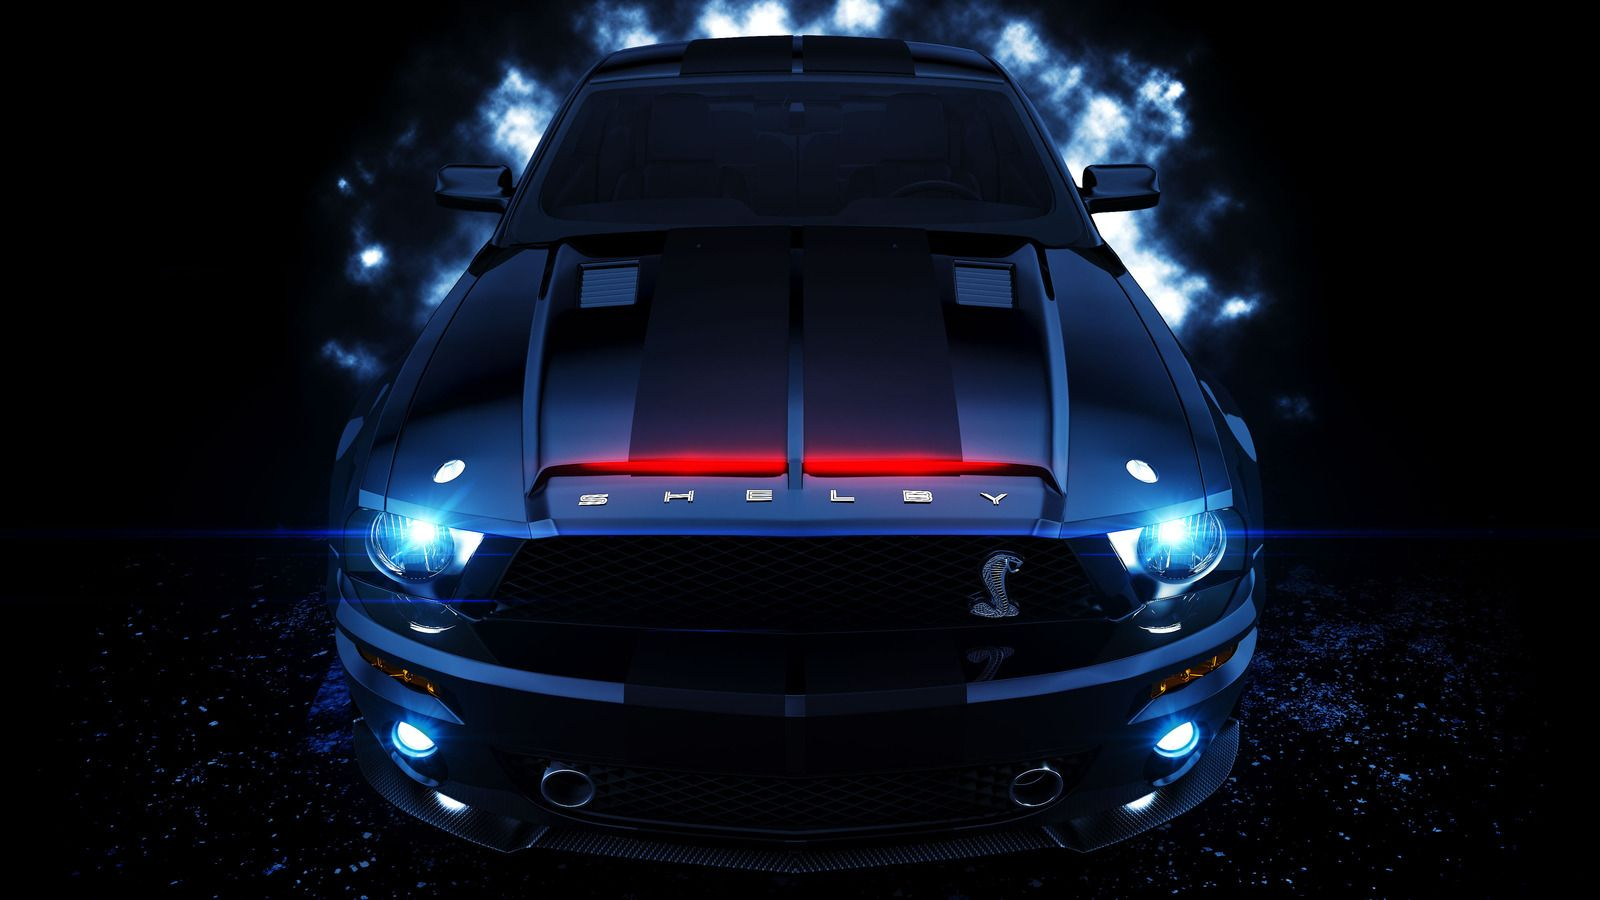 Knight Rider Ford Mustang Shelby Gt500 Ford Mustang Shelby Gt500